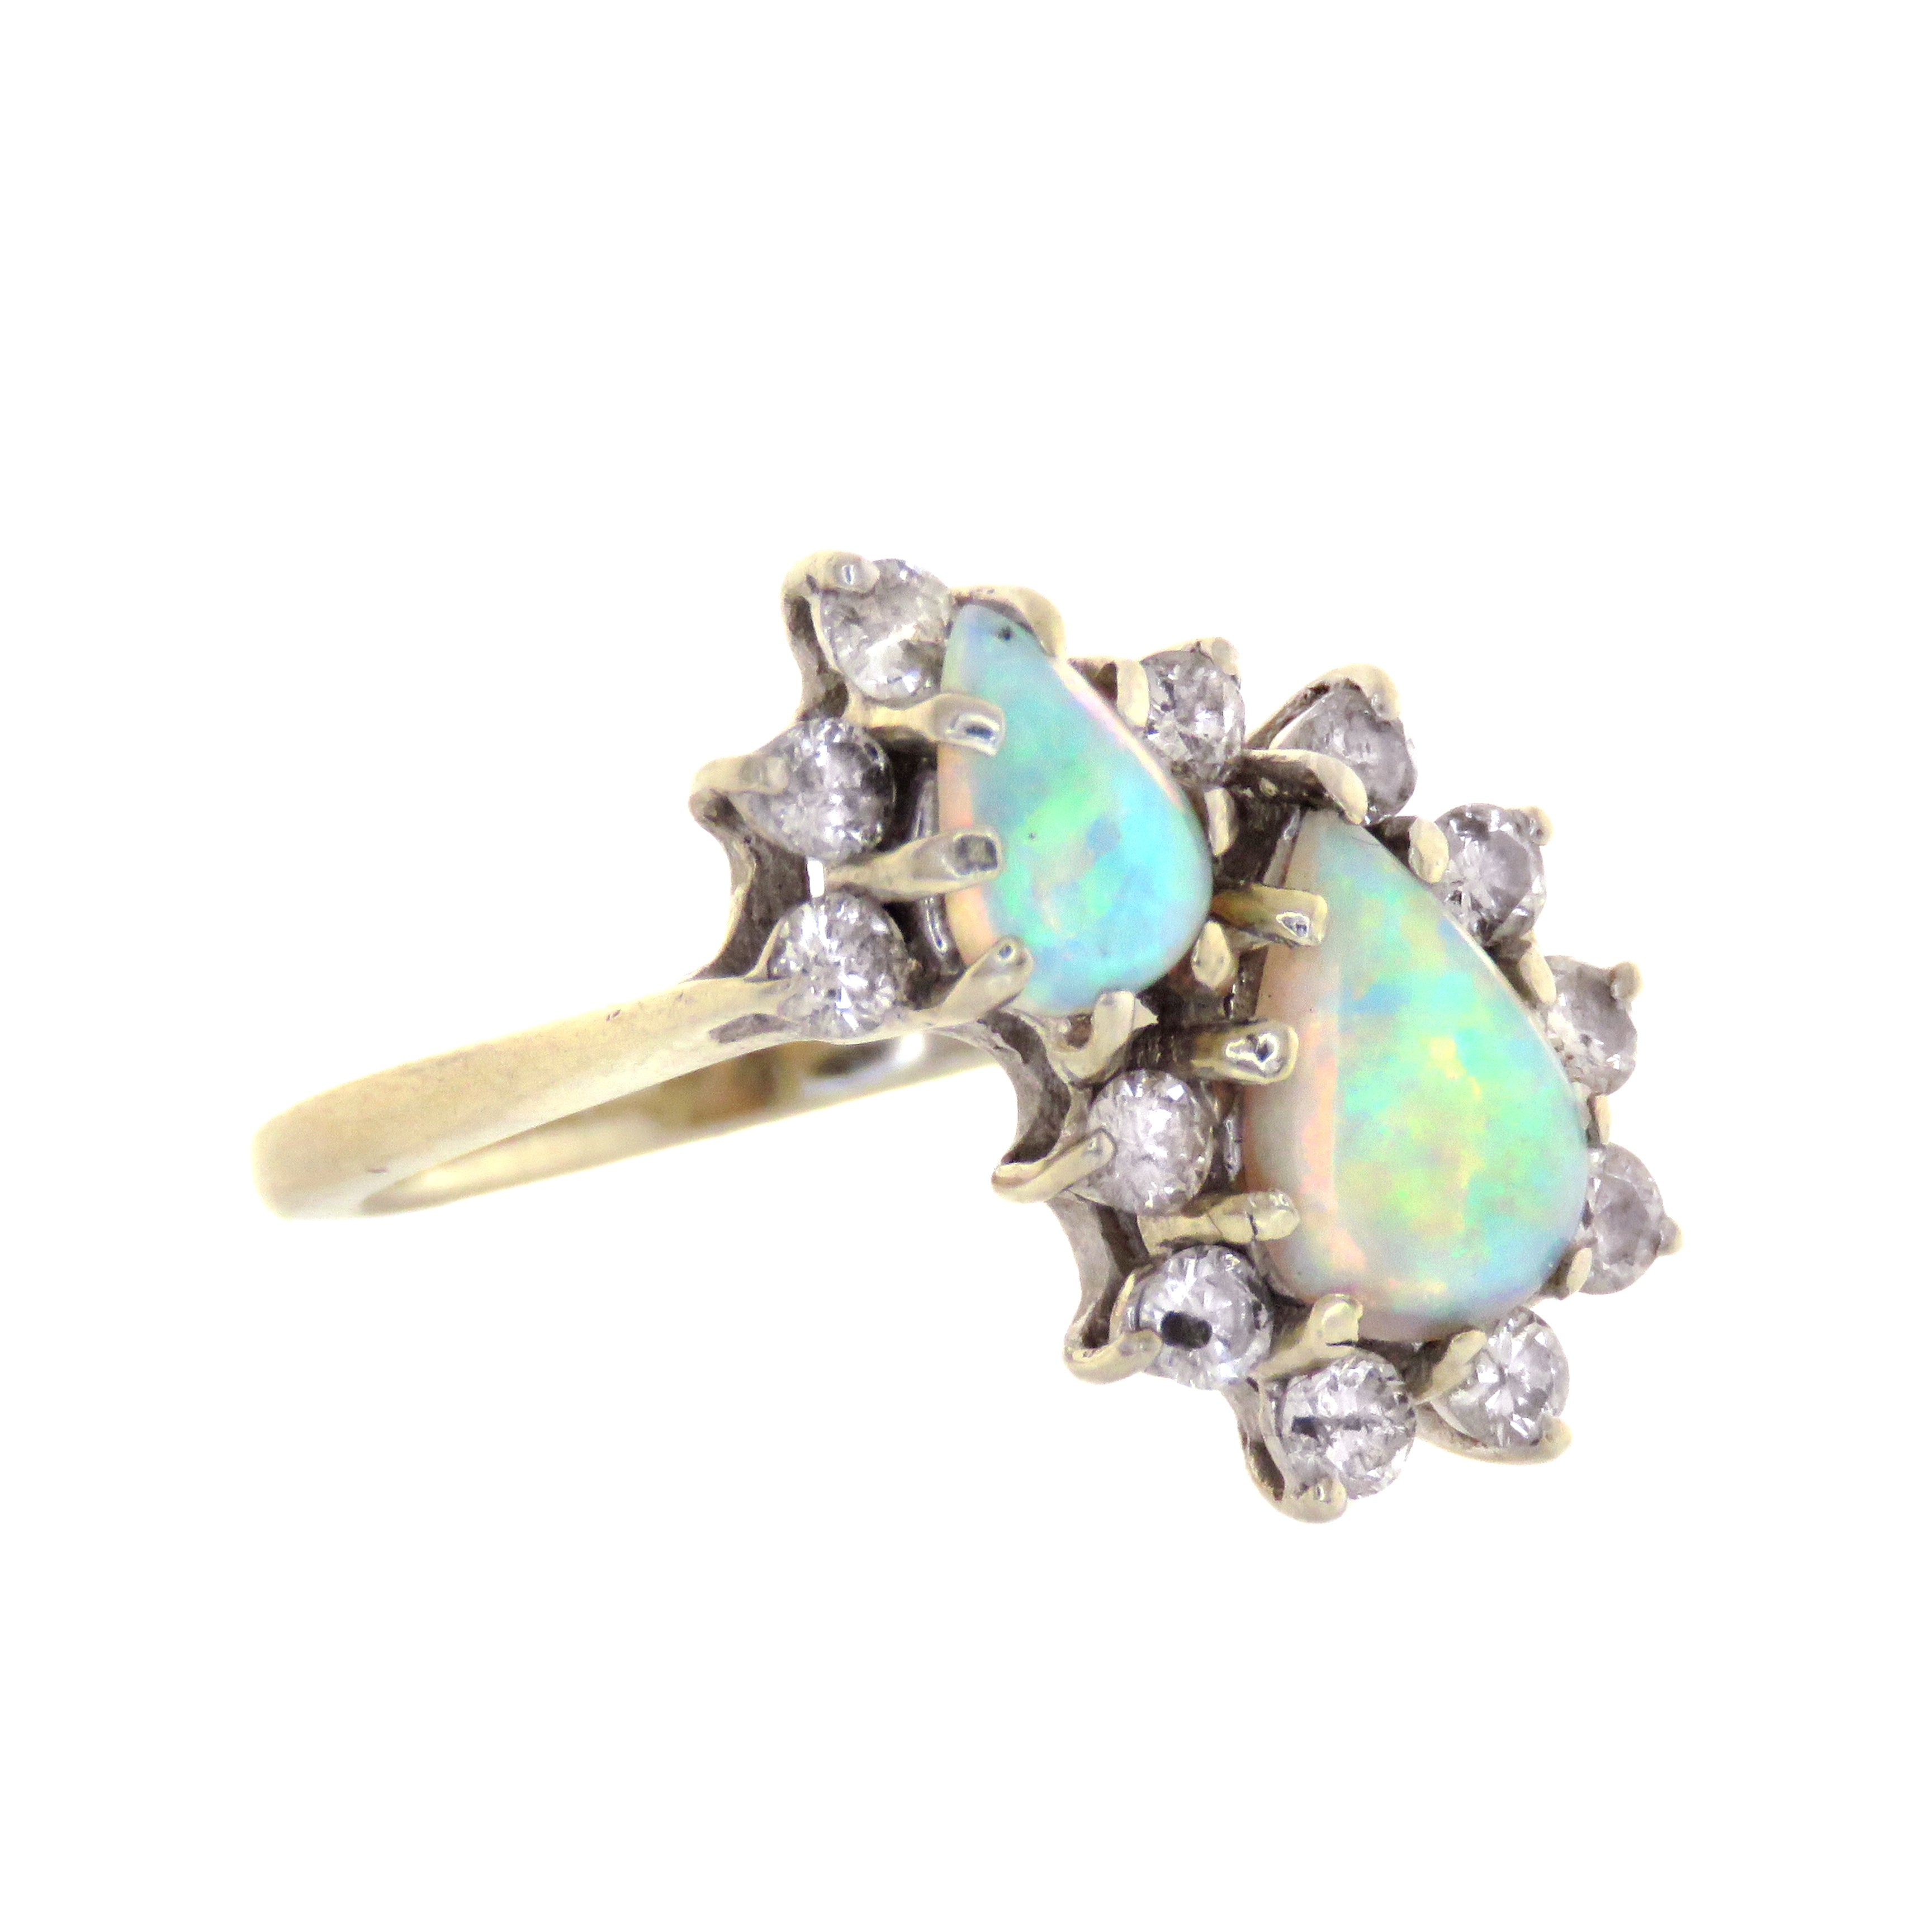 14ct Double Opal Cocktail Ring with Diamonds